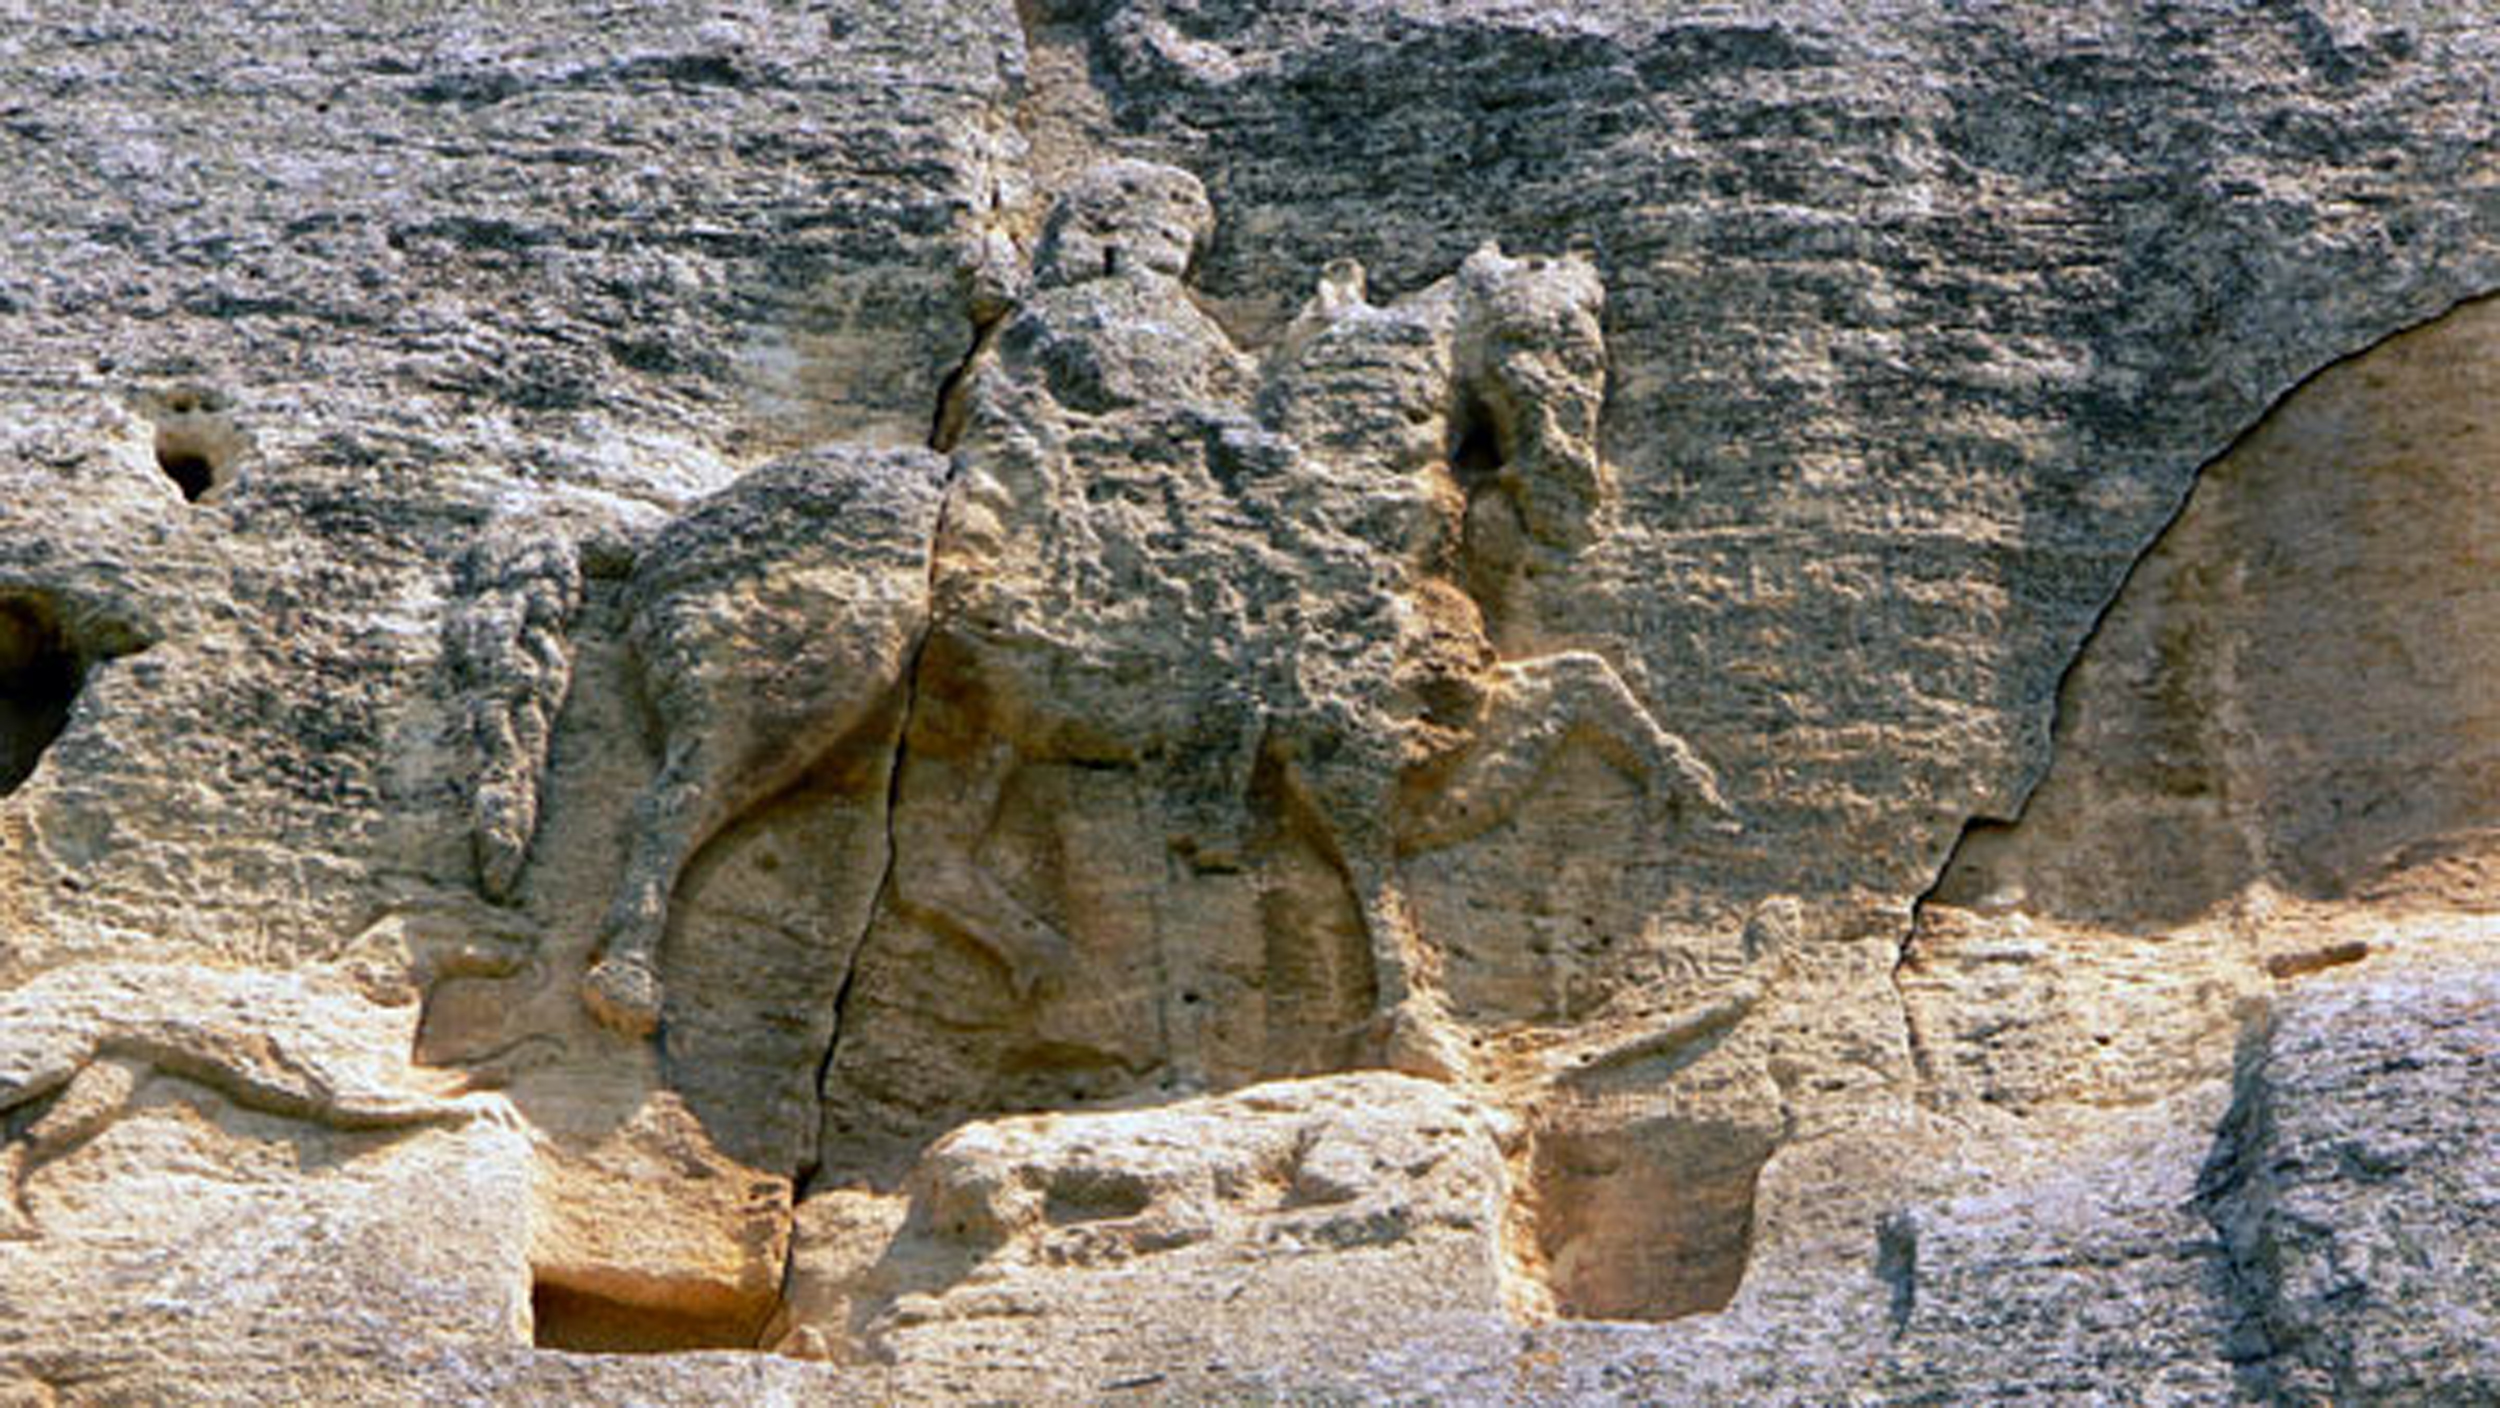 The-Madara-Horseman-Shumen-Bulgaria